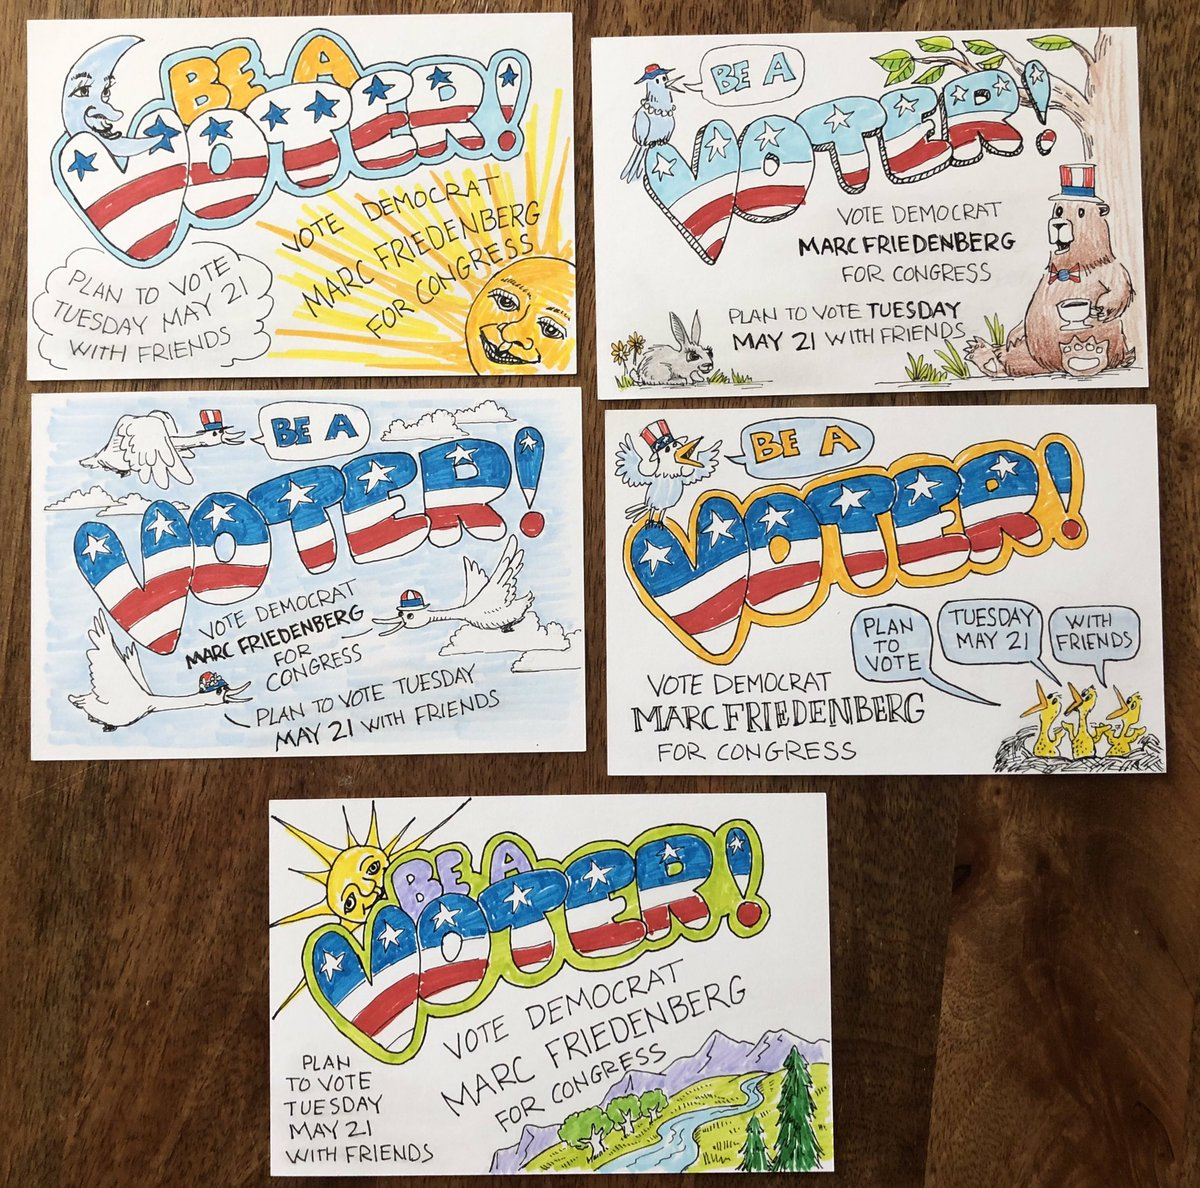 Resist authoritarianism. Be a voter. And vote blue. #PostCardsToVoters #TurnPA12Blue @MarcForPA @DemocratWit<br>http://pic.twitter.com/2rQ3Vq9oiE